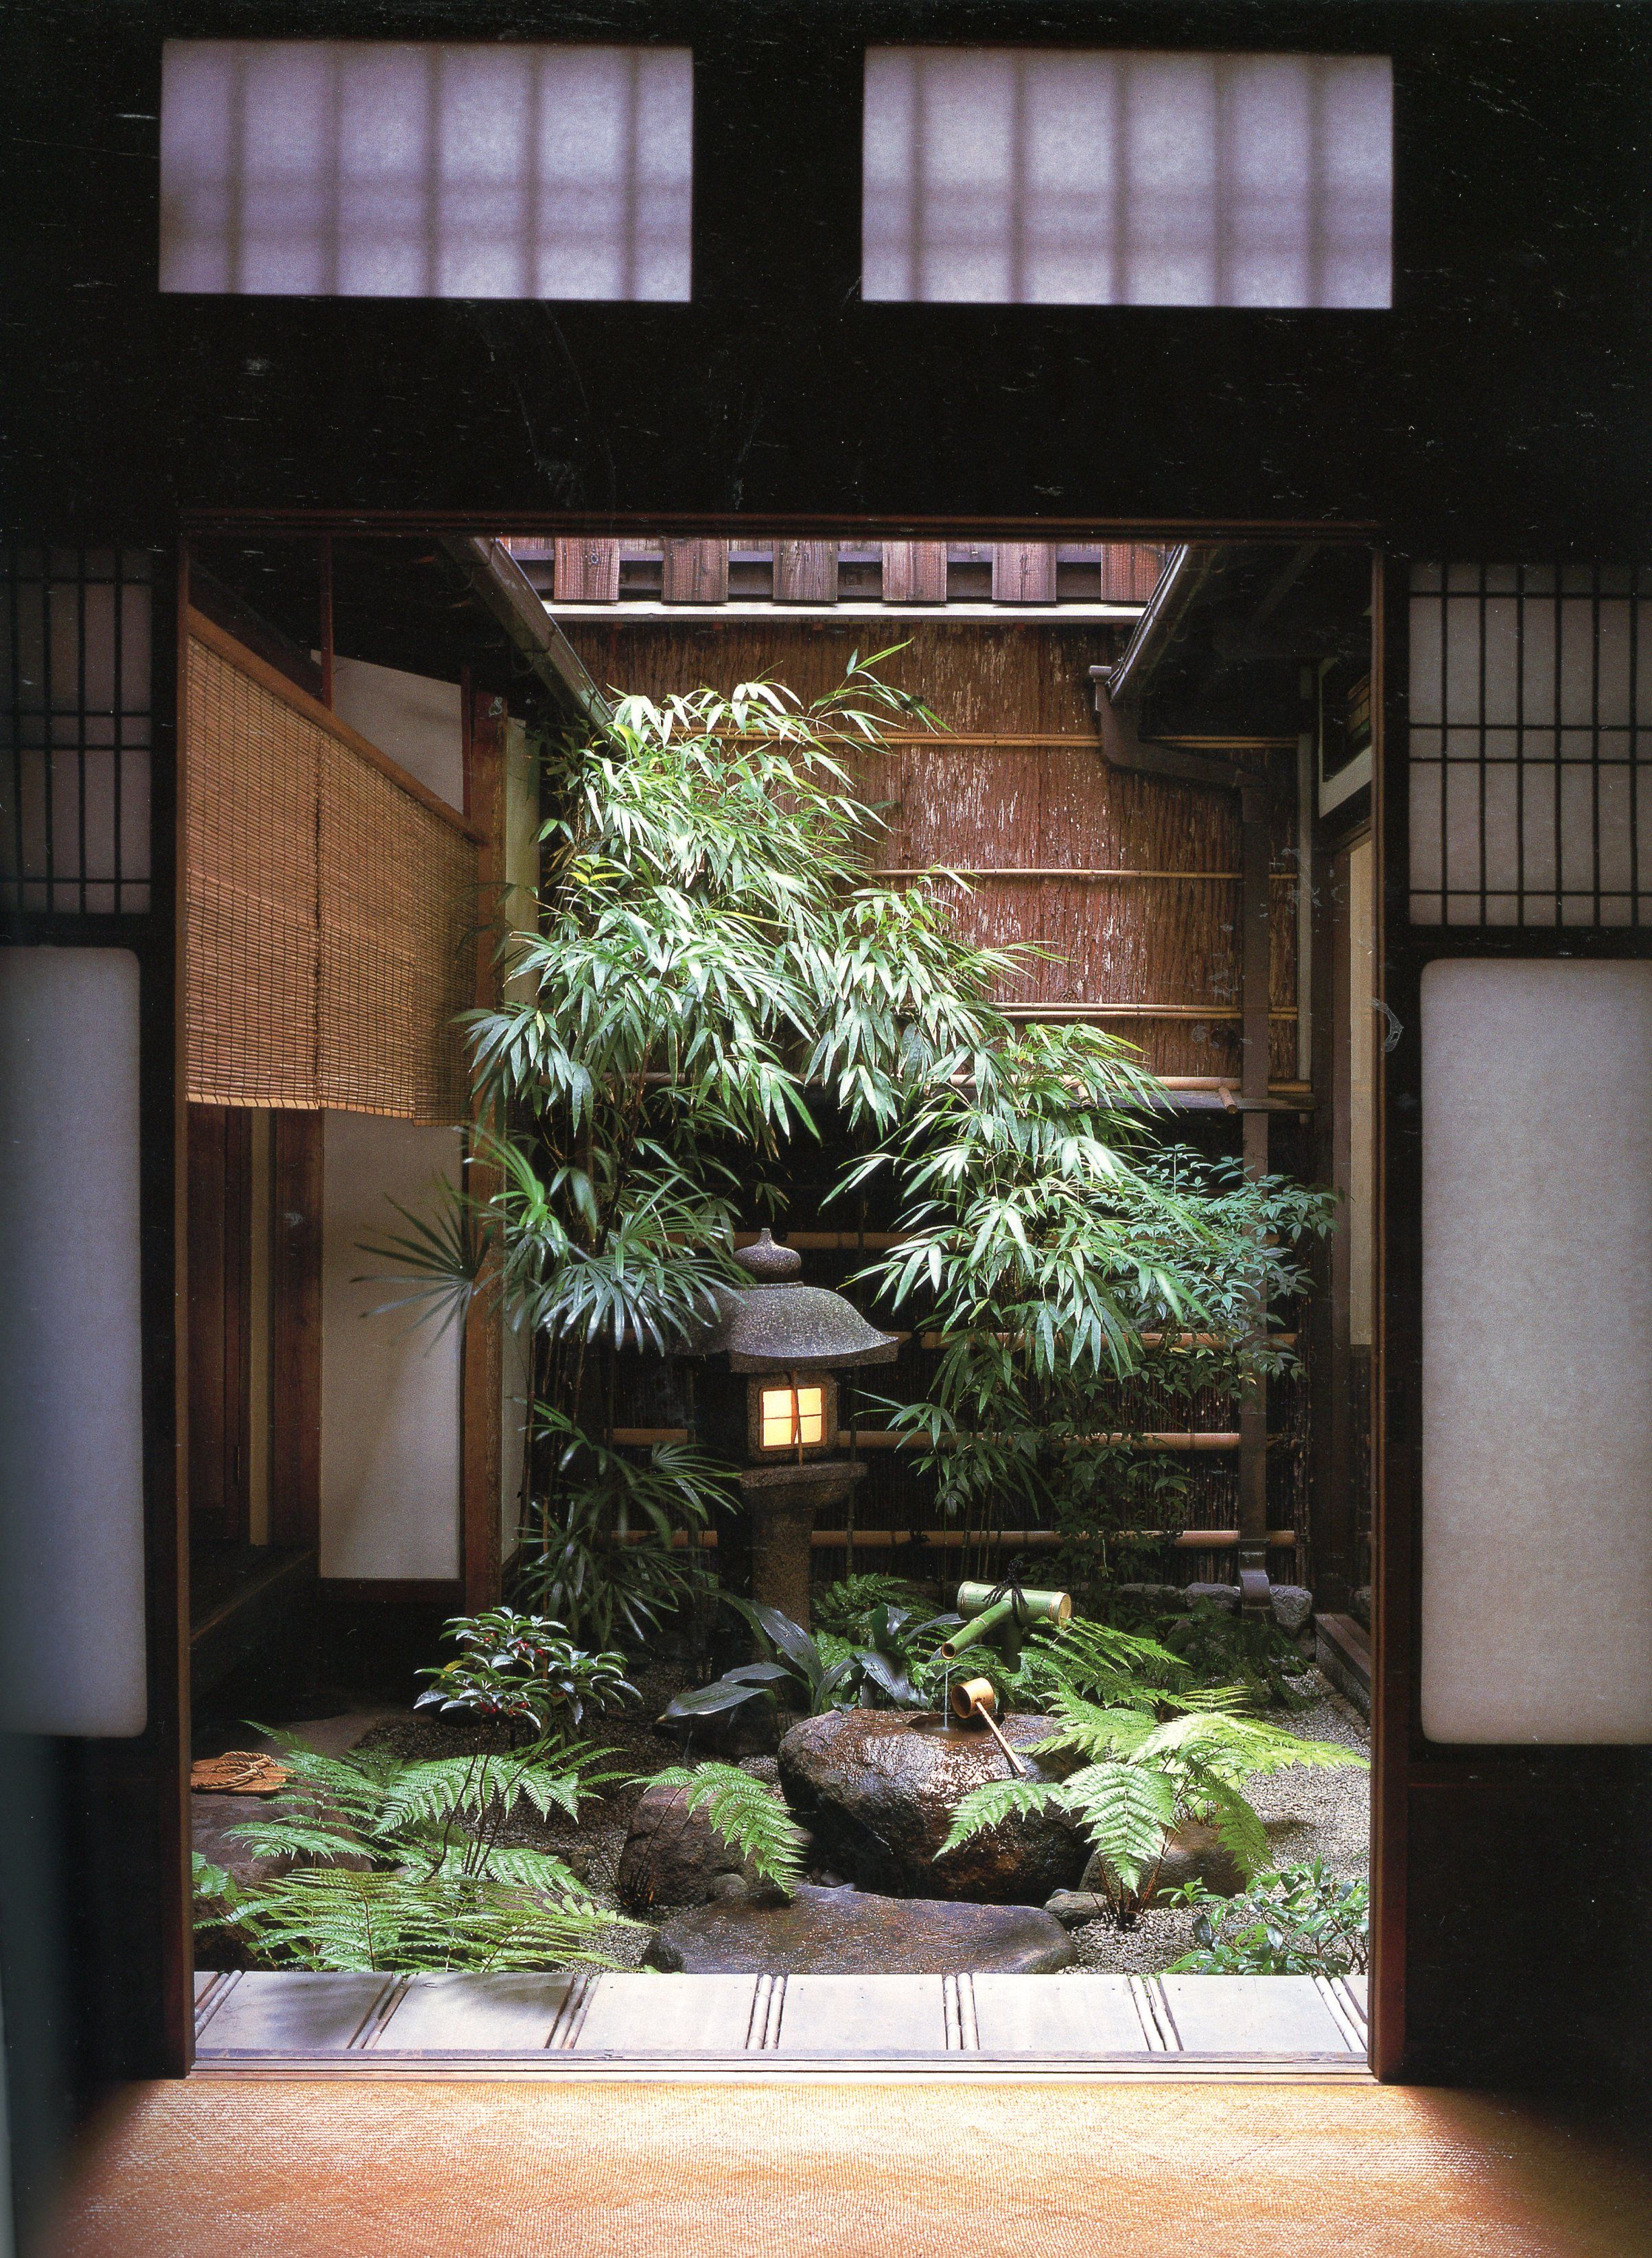 b076cb644cea38160502e717058f8f99 - Landscapes For Small Spaces Japanese Courtyard Gardens